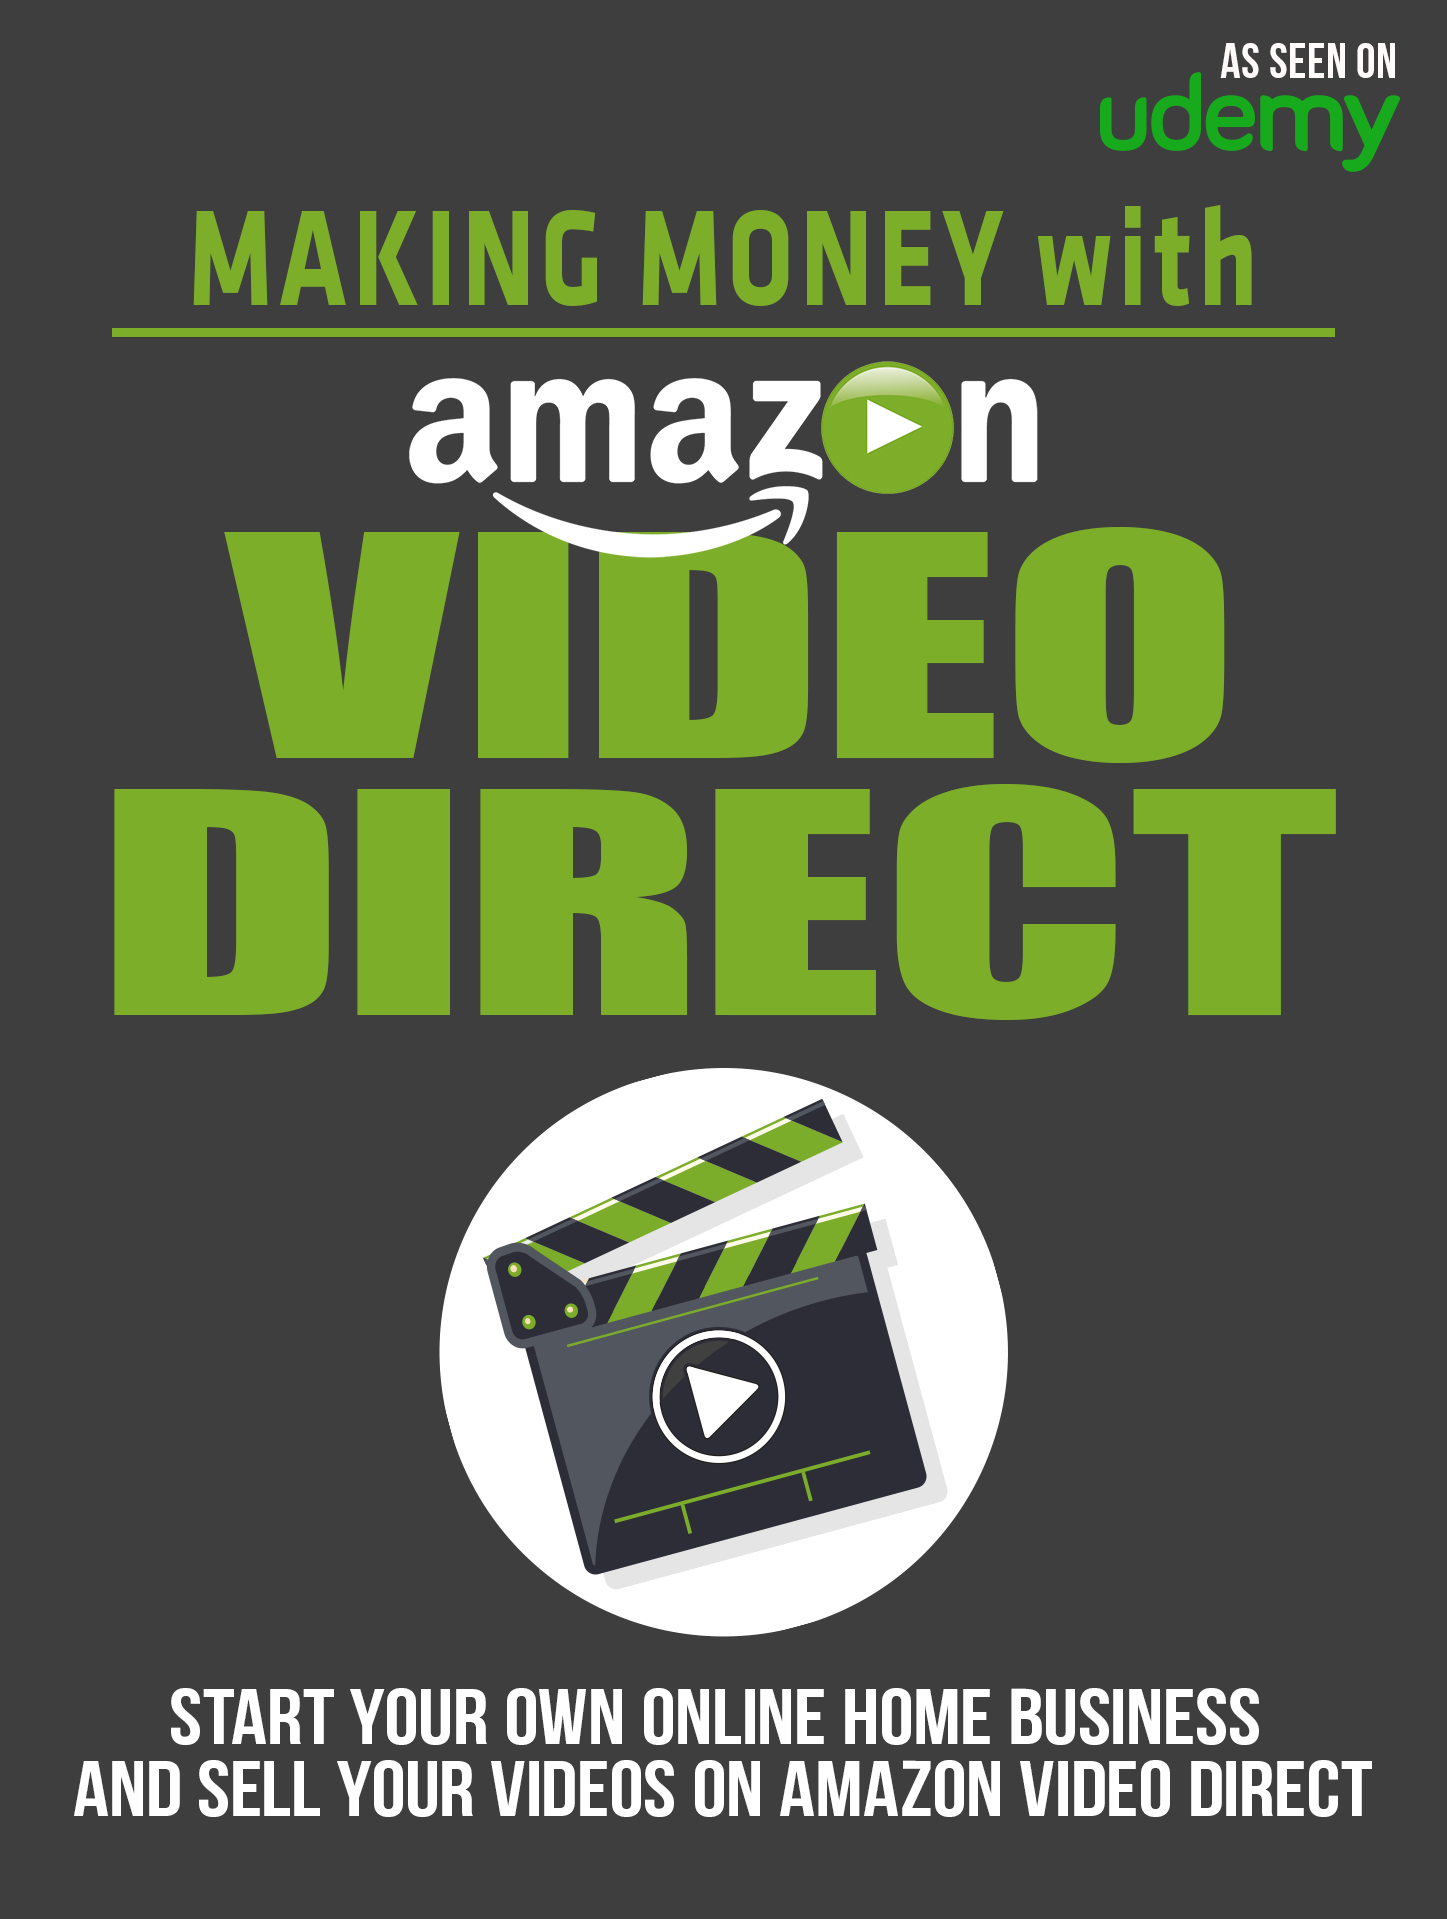 Making Money With Amazon Video Direct | OMG Mastermind